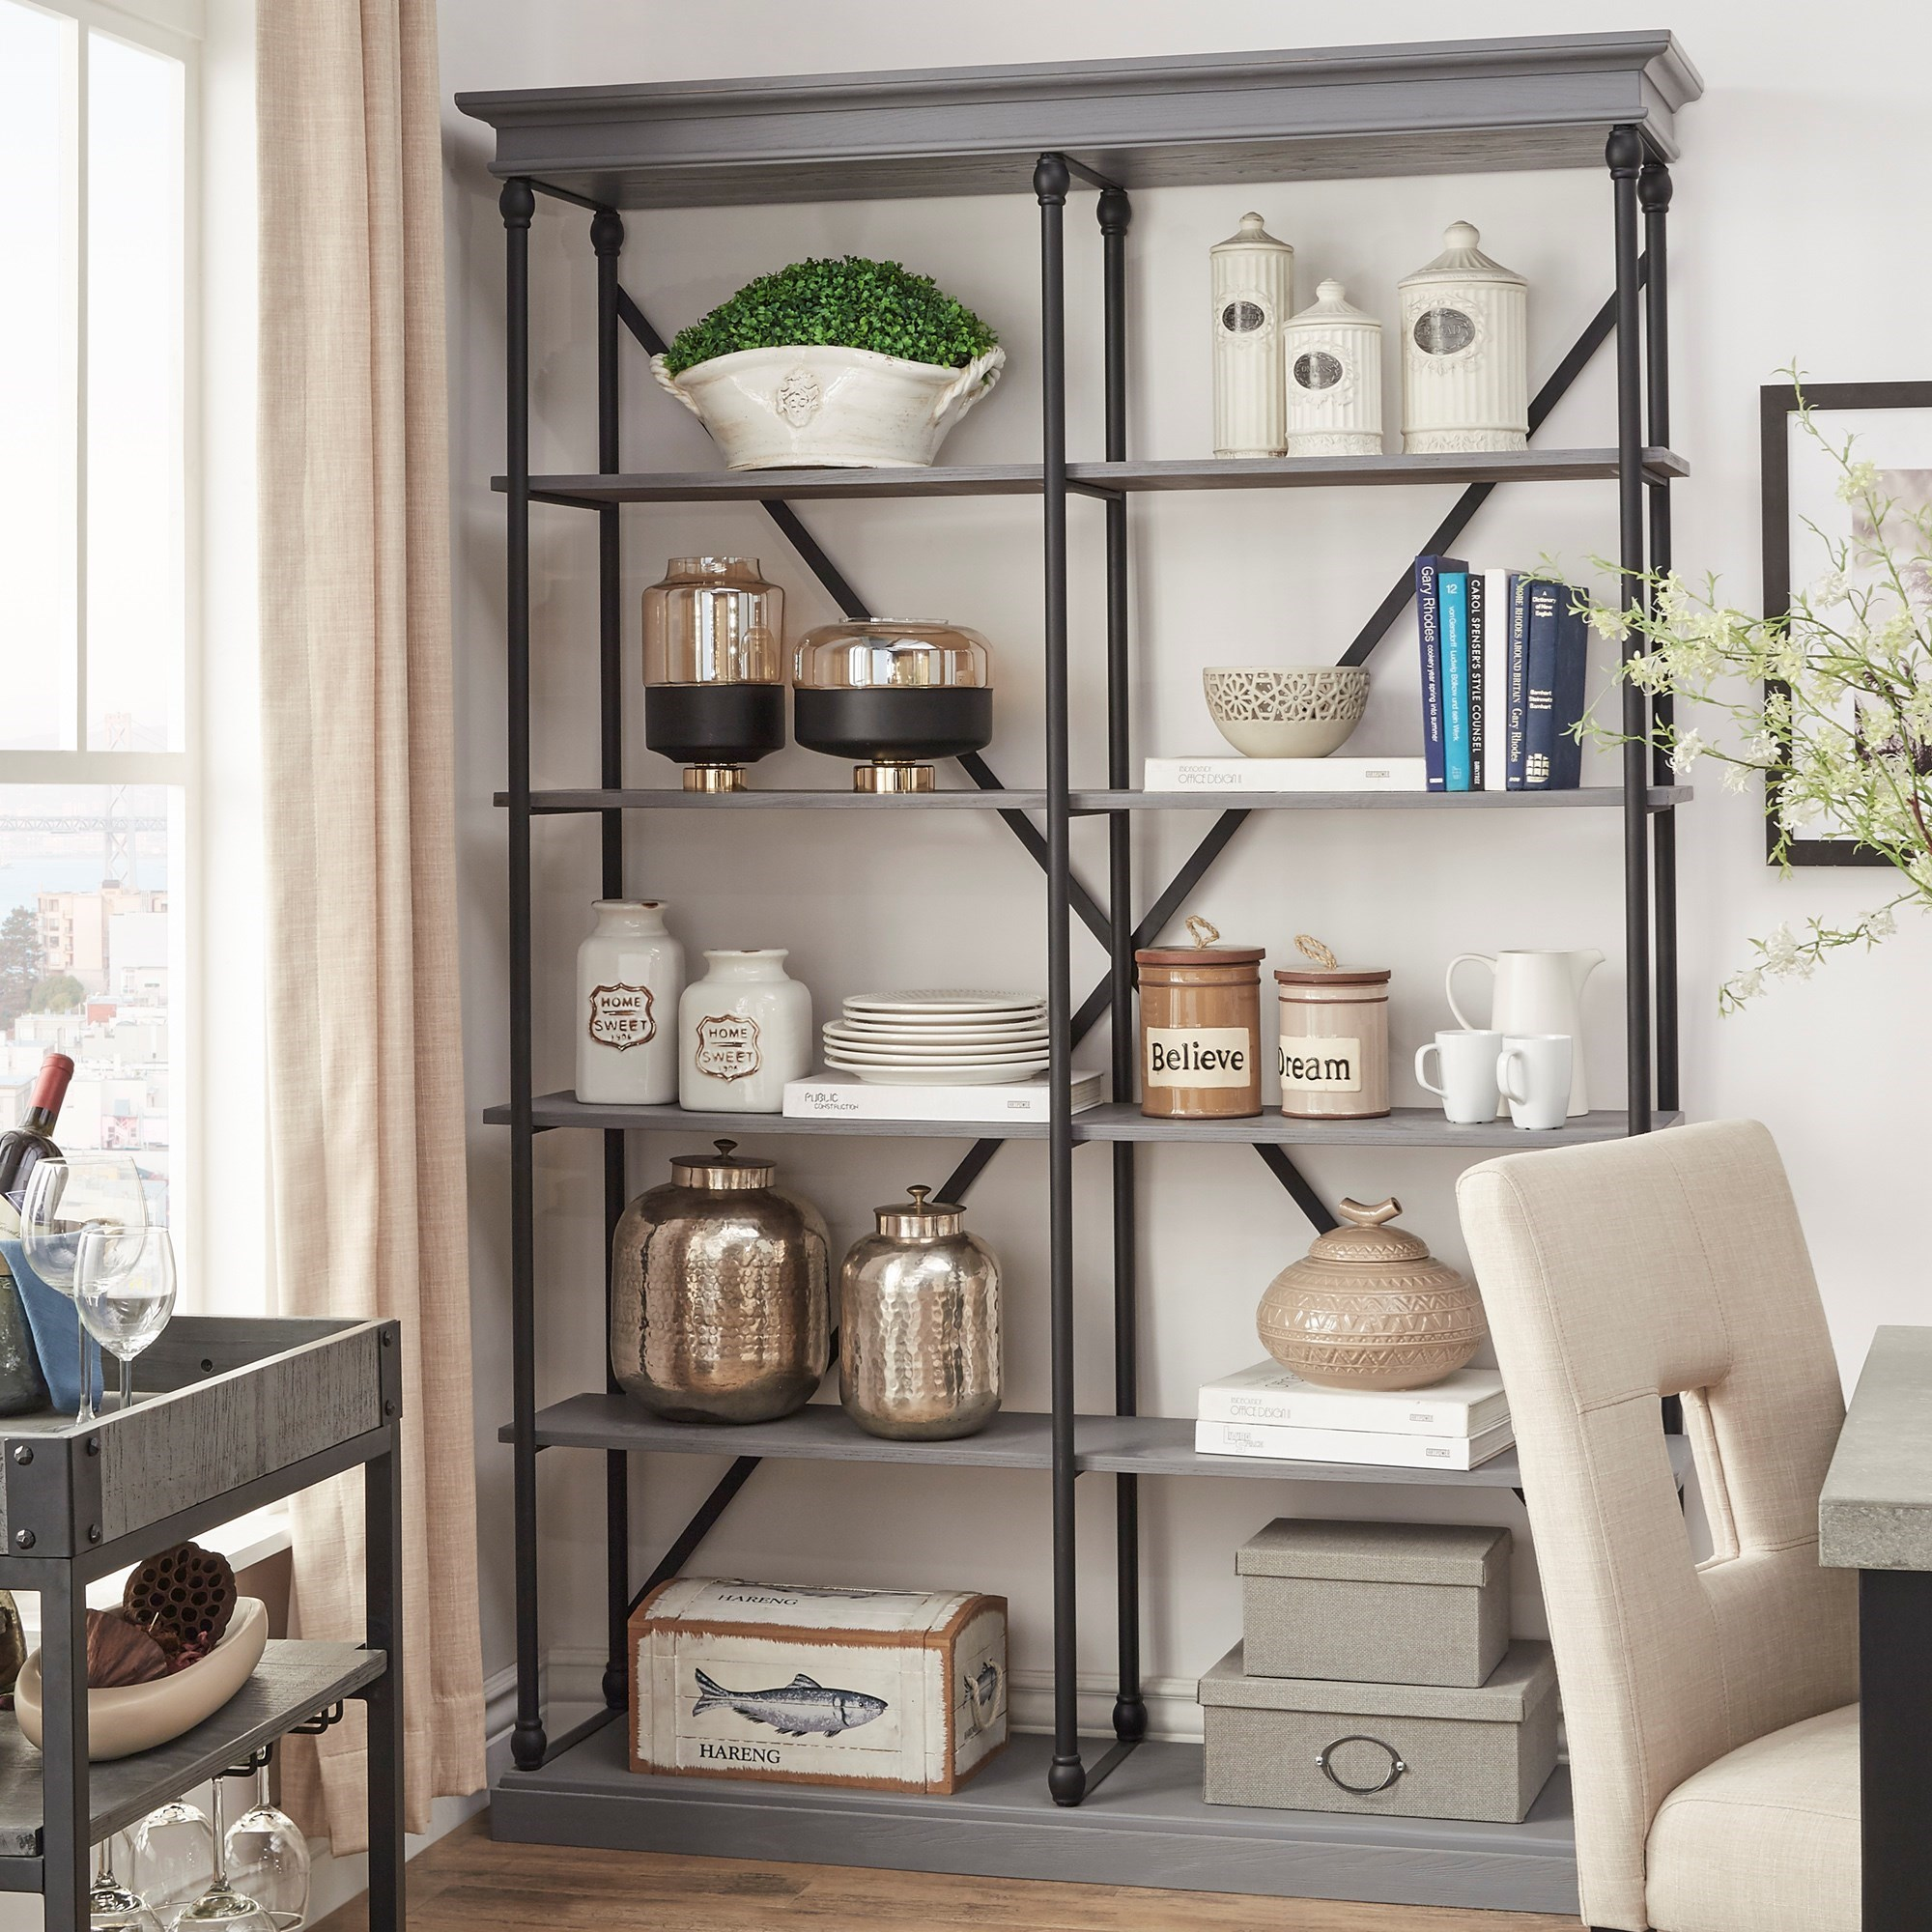 E296 X-Back Open Bookcase with Metal Frame by Homelegance at Rooms for Less